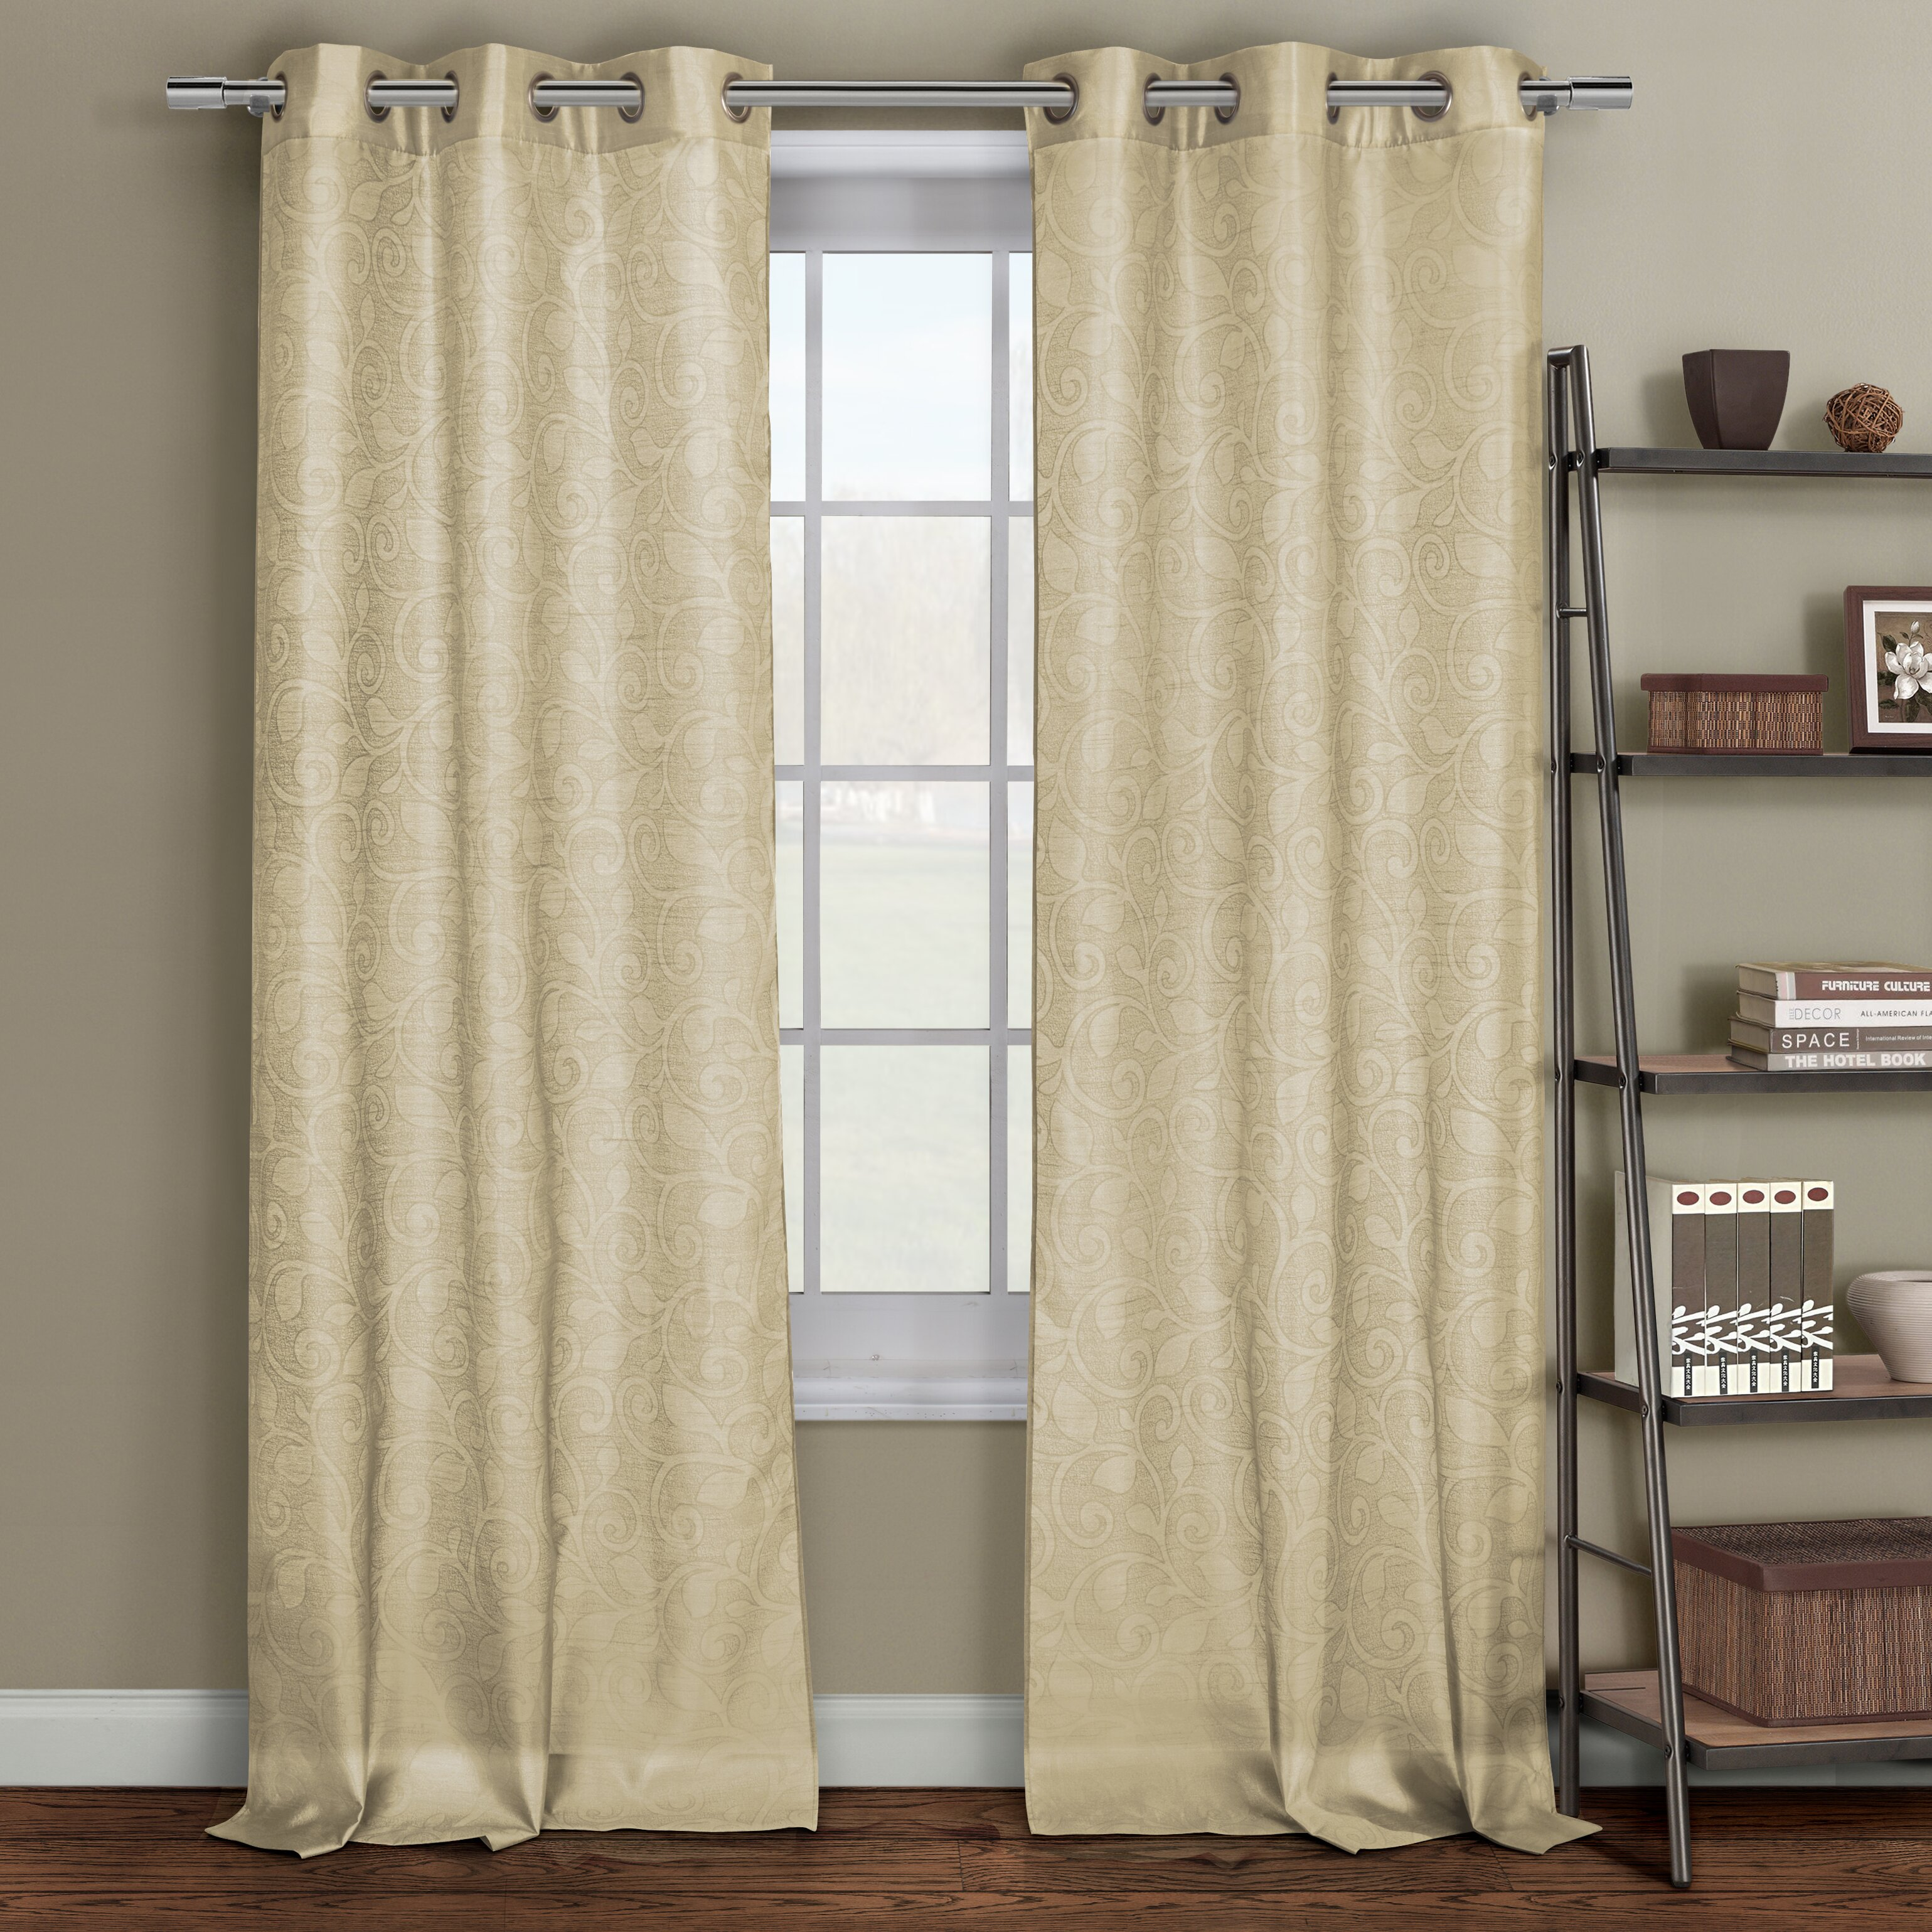 curtains Discover Pottery Barn's premium range of ready made curtains, available online and in store. Skip the specialist curtain & blind supplier and source your window coverings in the same place as your sofas, dining settings and decorative accents for a cohesive look that's quintessentially you.